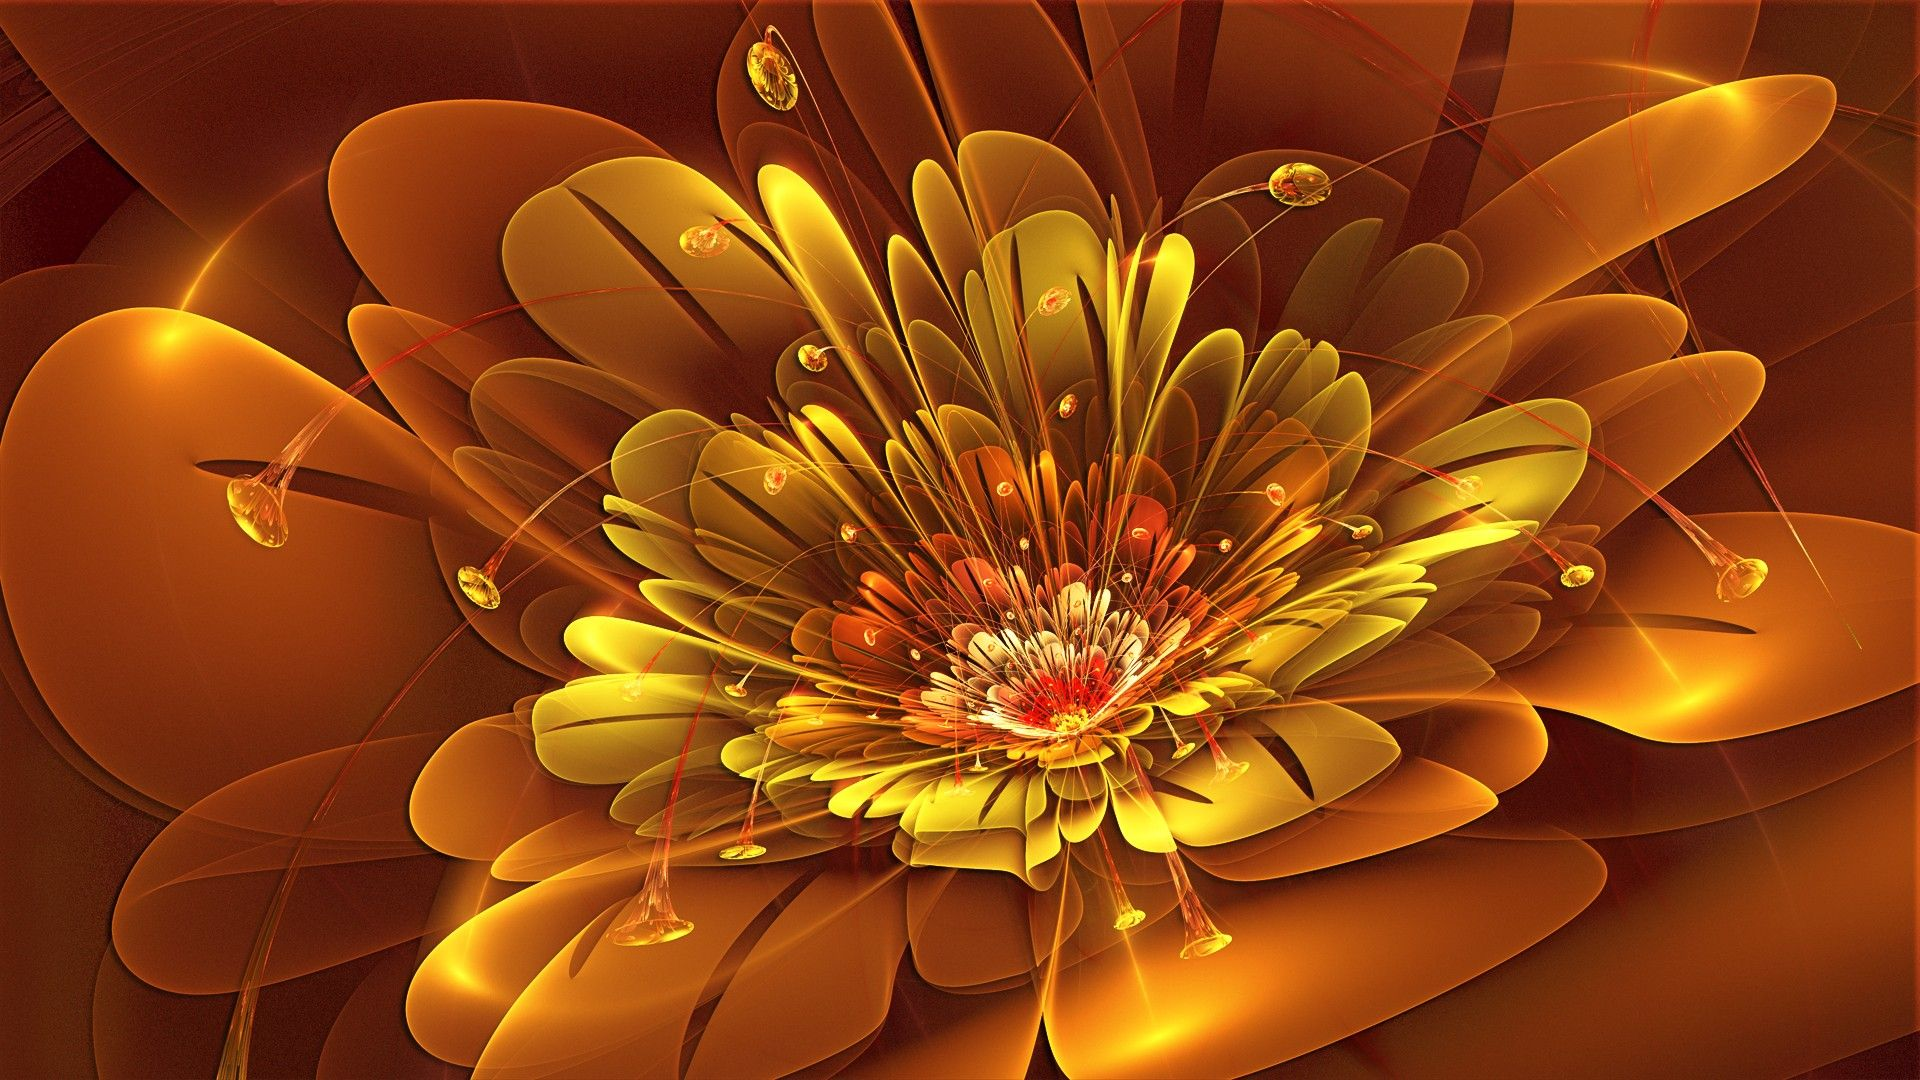 Download Abstract Flowers HD Wallpaper Abstract